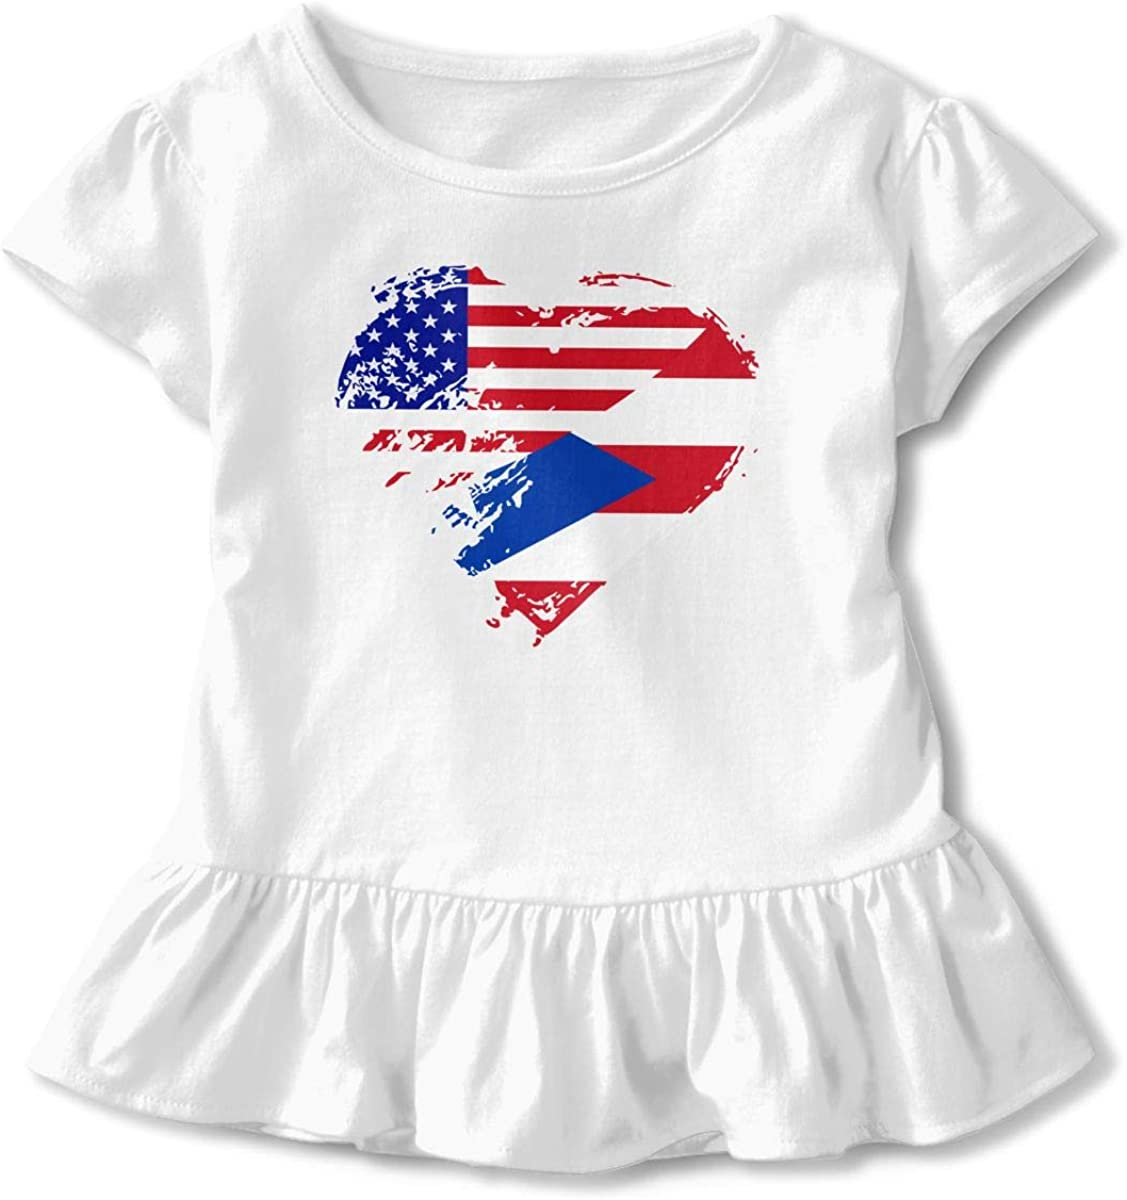 Puerto Rico American Heart Flag Kids Baby Girls Short Sleeve Graphic Shirts